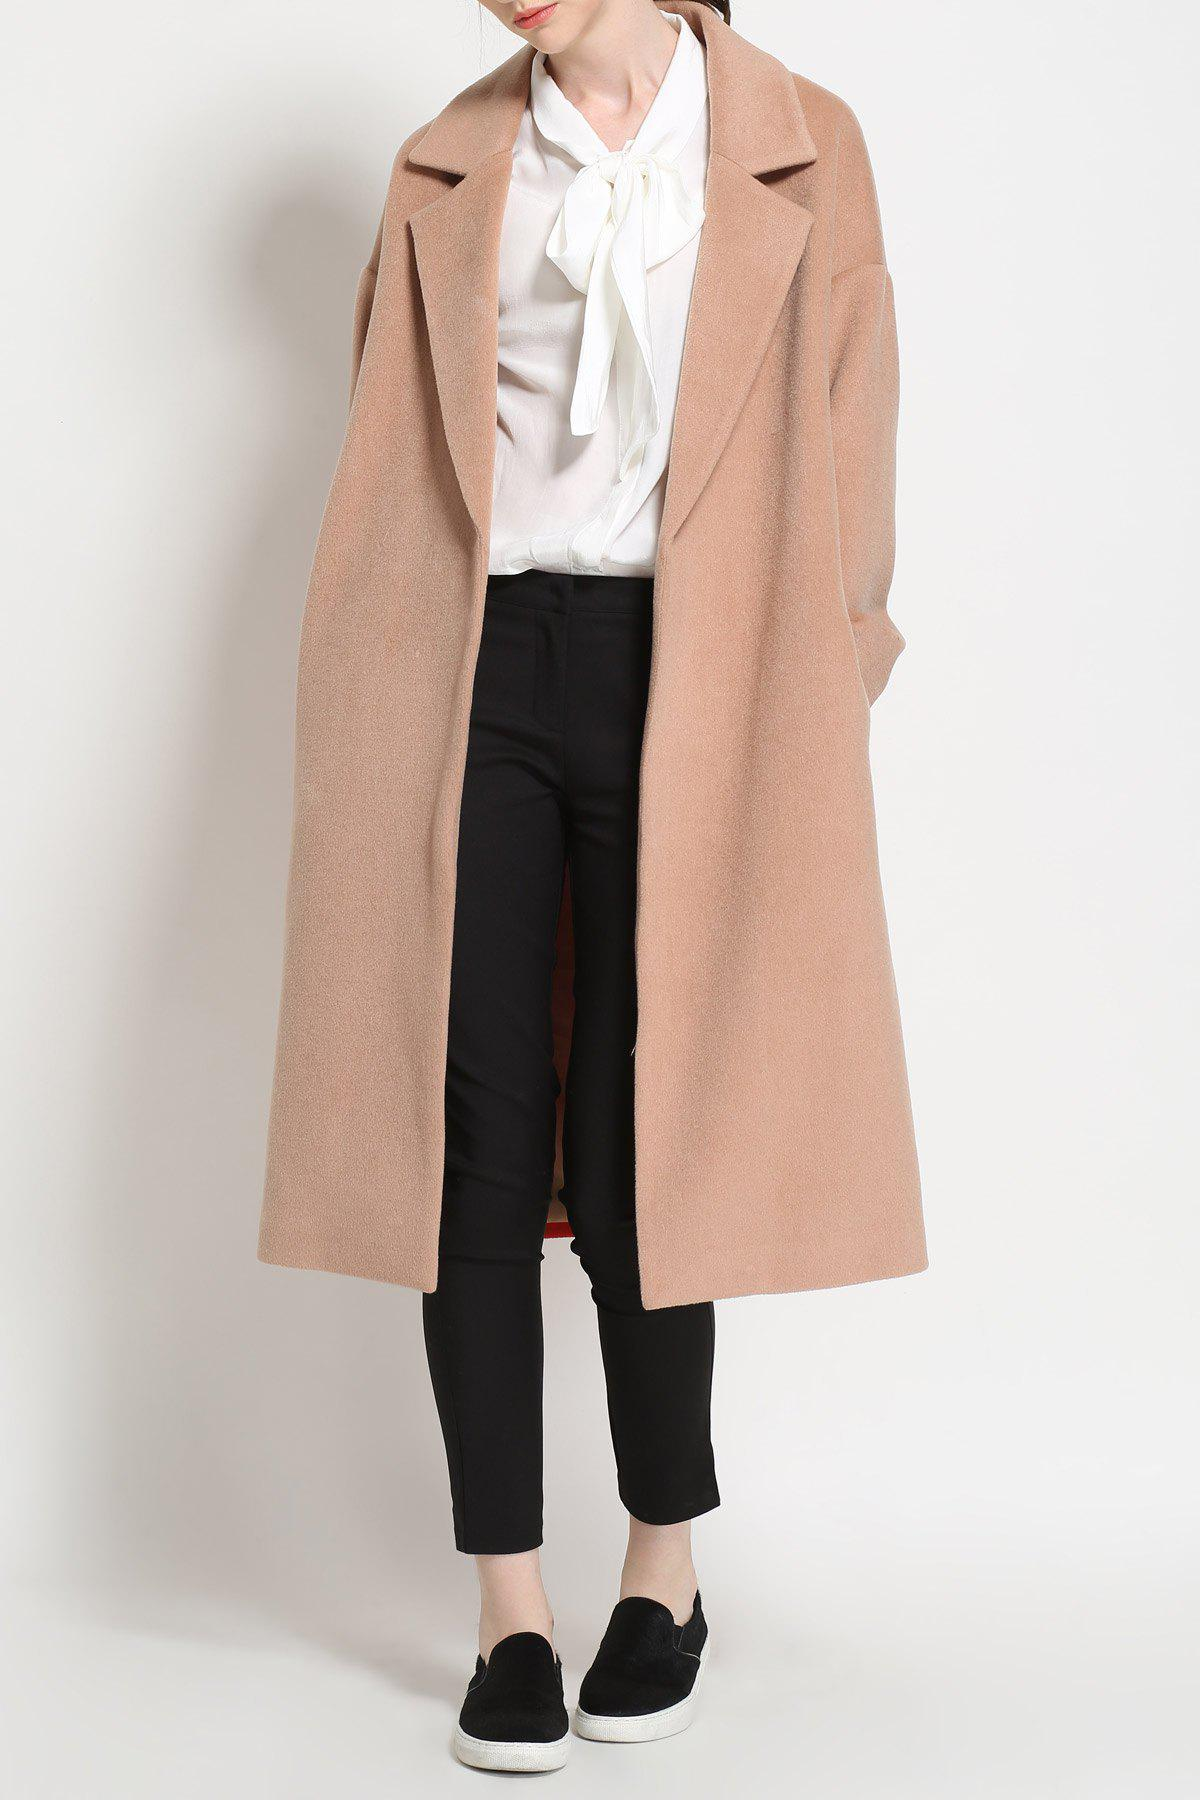 Maxi Open Front Wool Blend Coat - KHAKI M